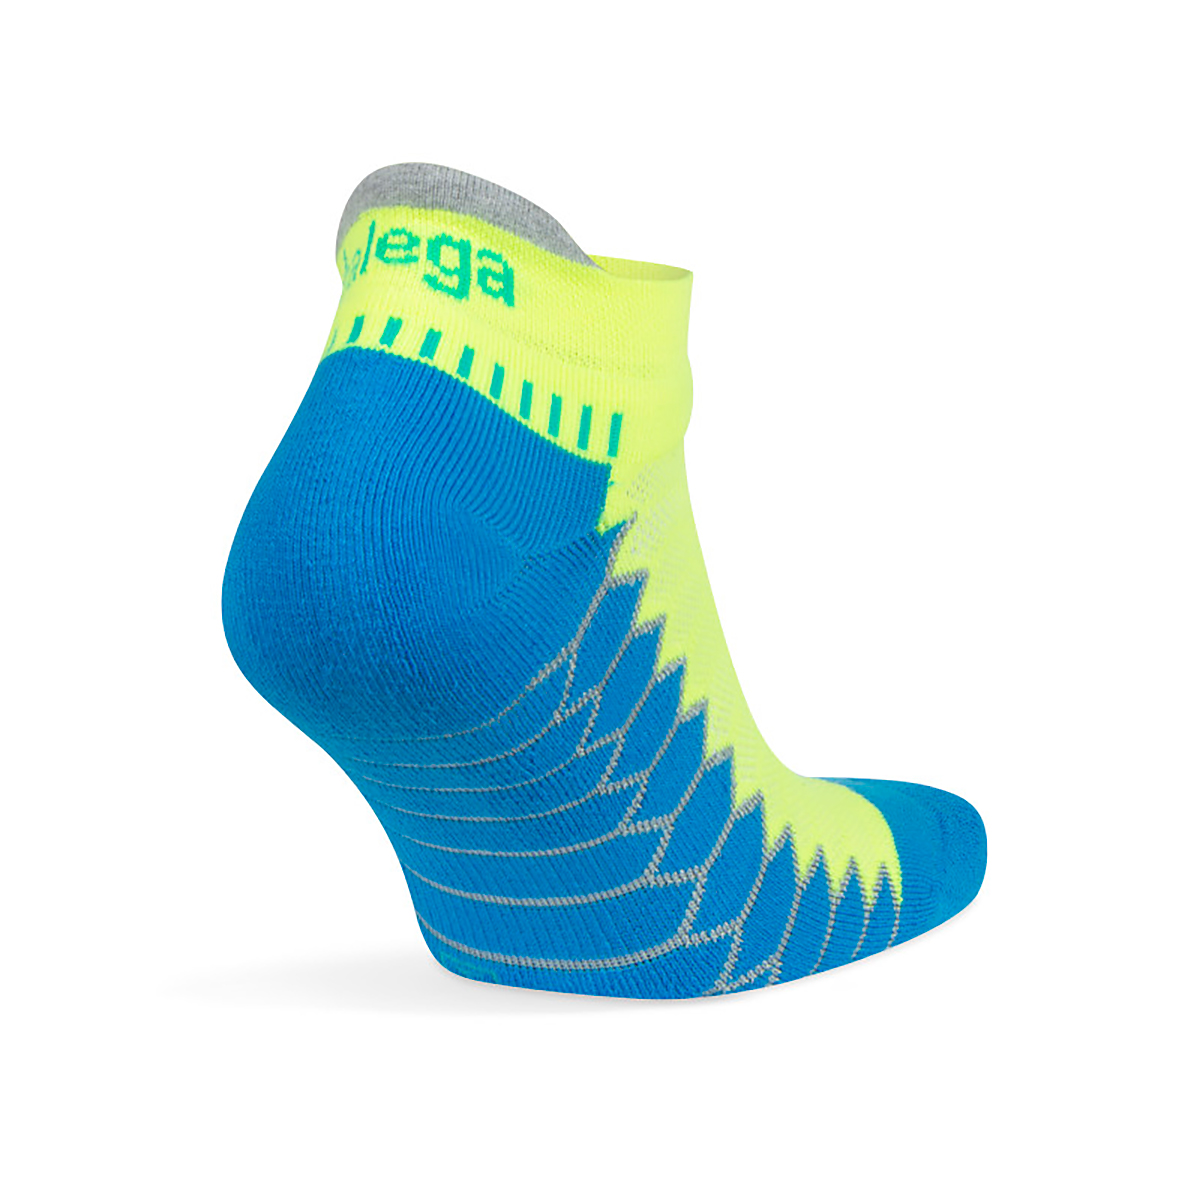 Balega Silver No Show Socks - Color: Bright Turquoise/Neon Lime Size: S, Blue, large, image 3